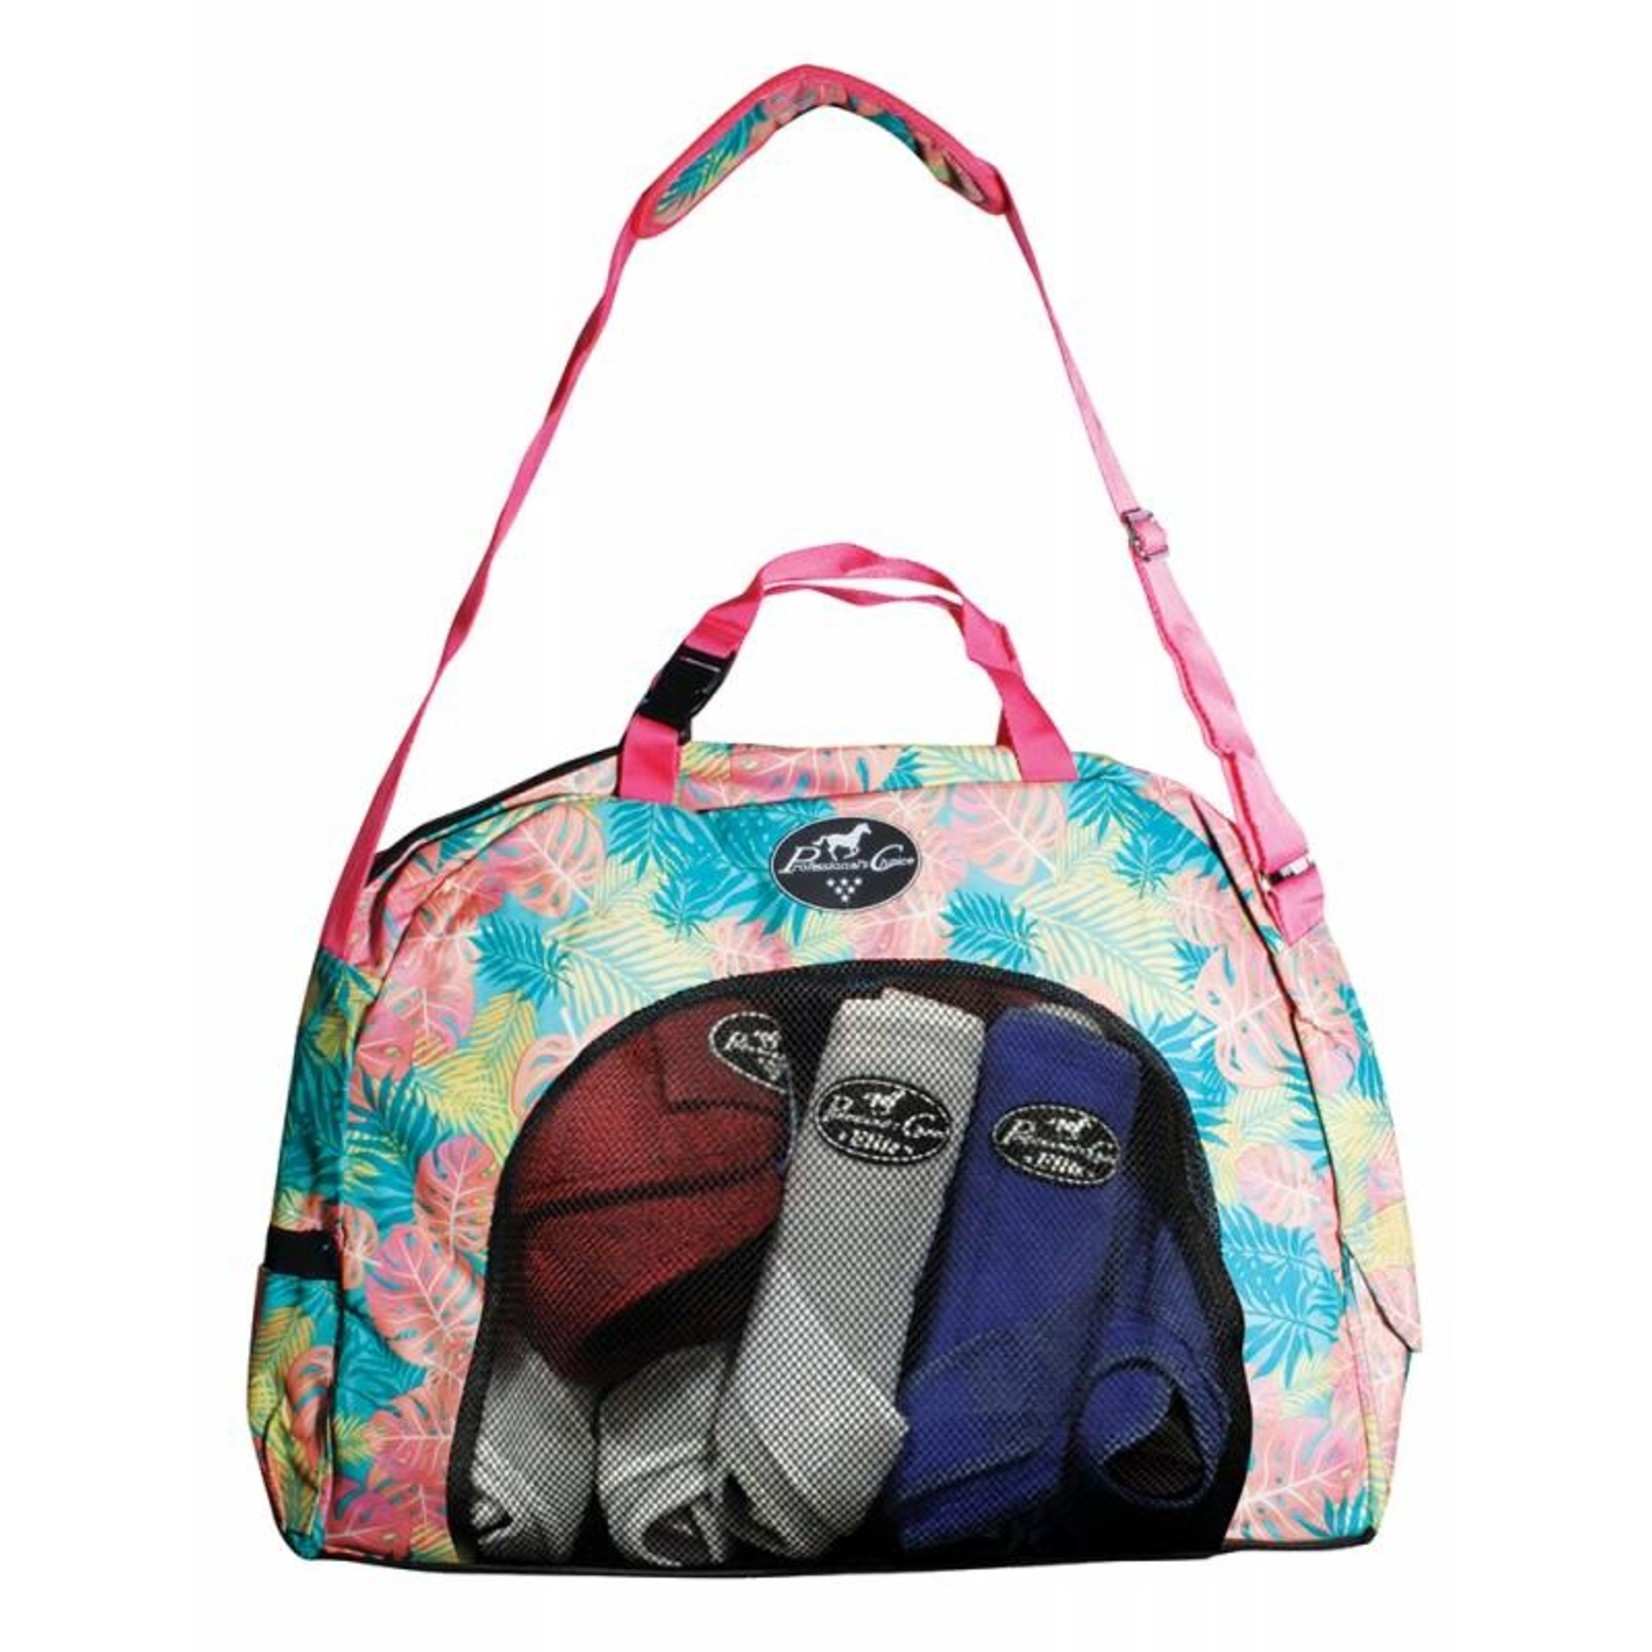 Professional's Choice PC Carry-All Bag - Miami